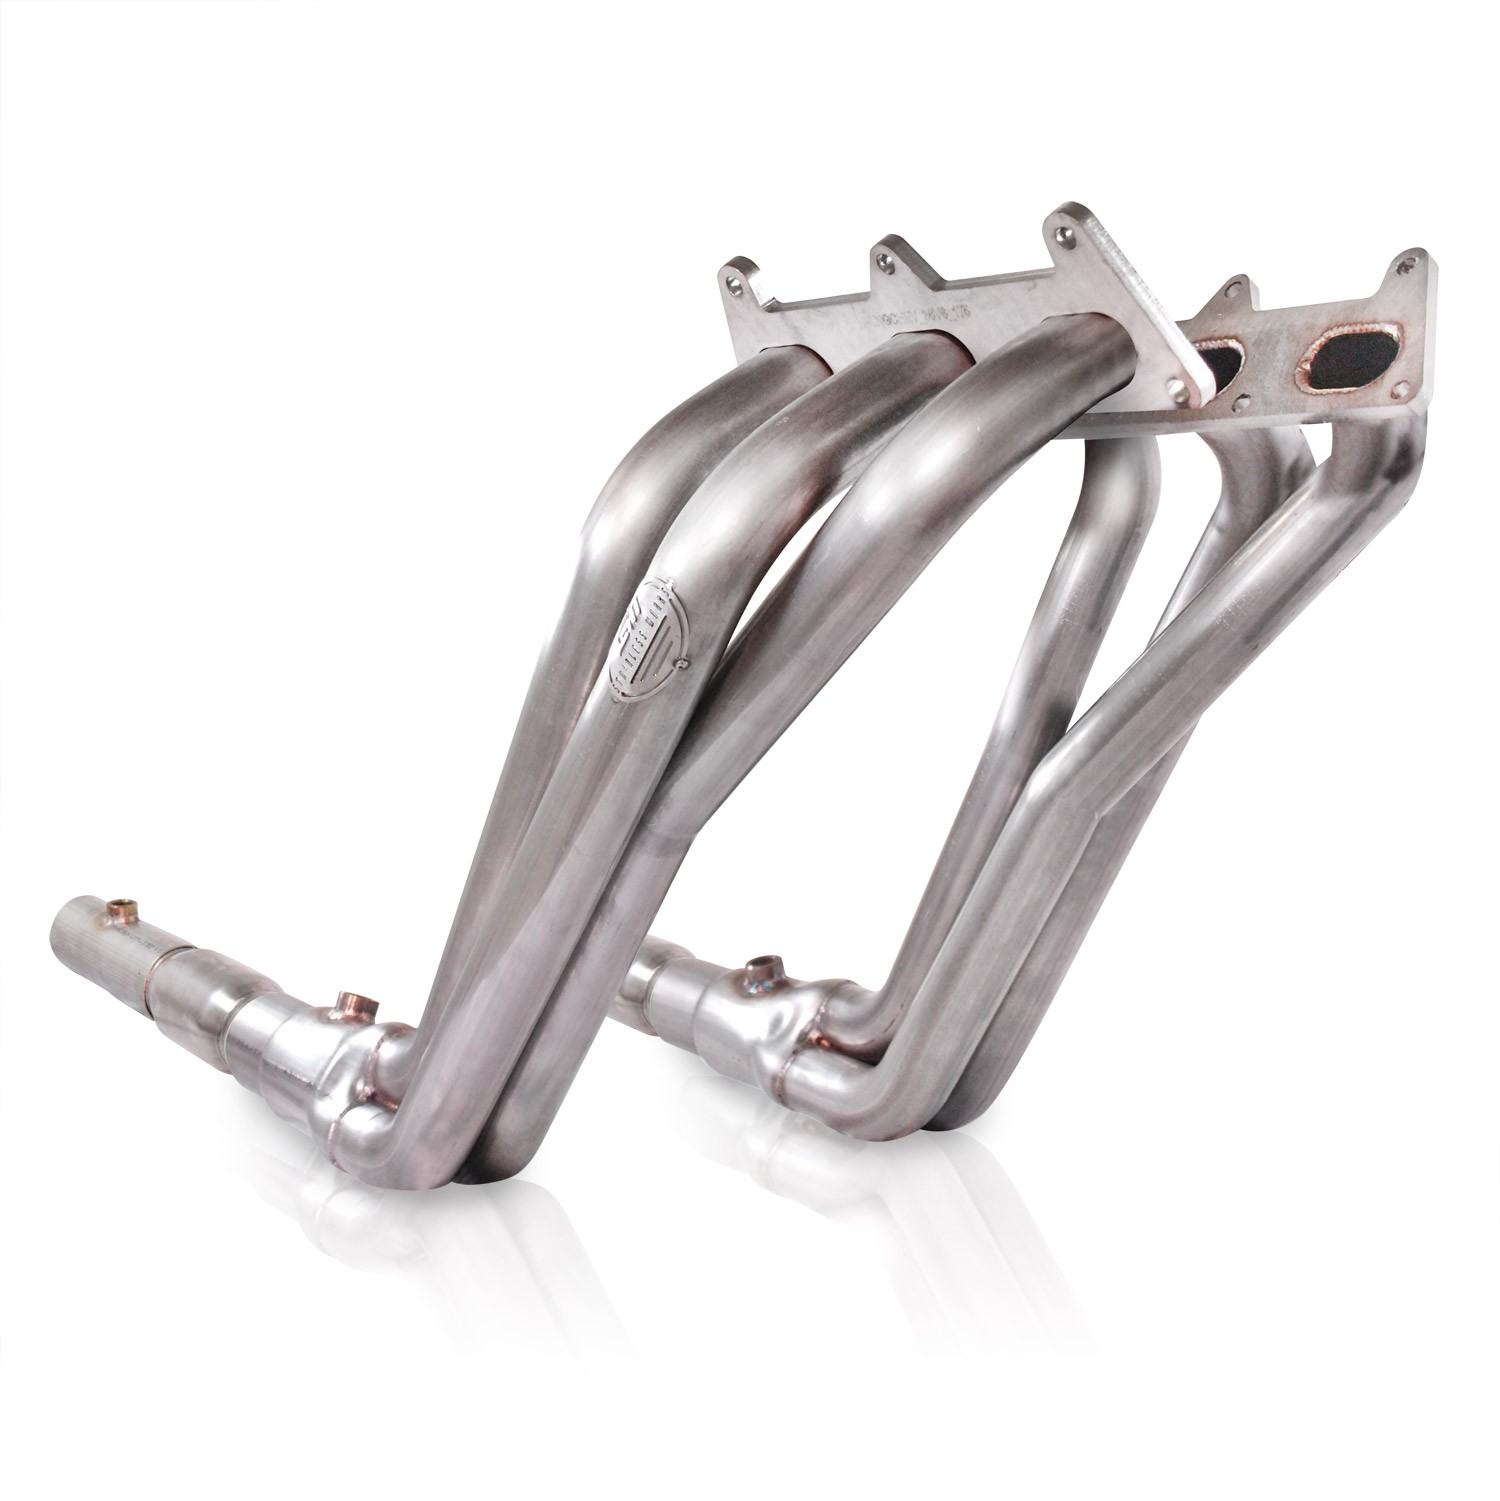 "2010-2011 Camaro V6 Stainless Works 1 3/4"" Long Tube Headers - Offroad"